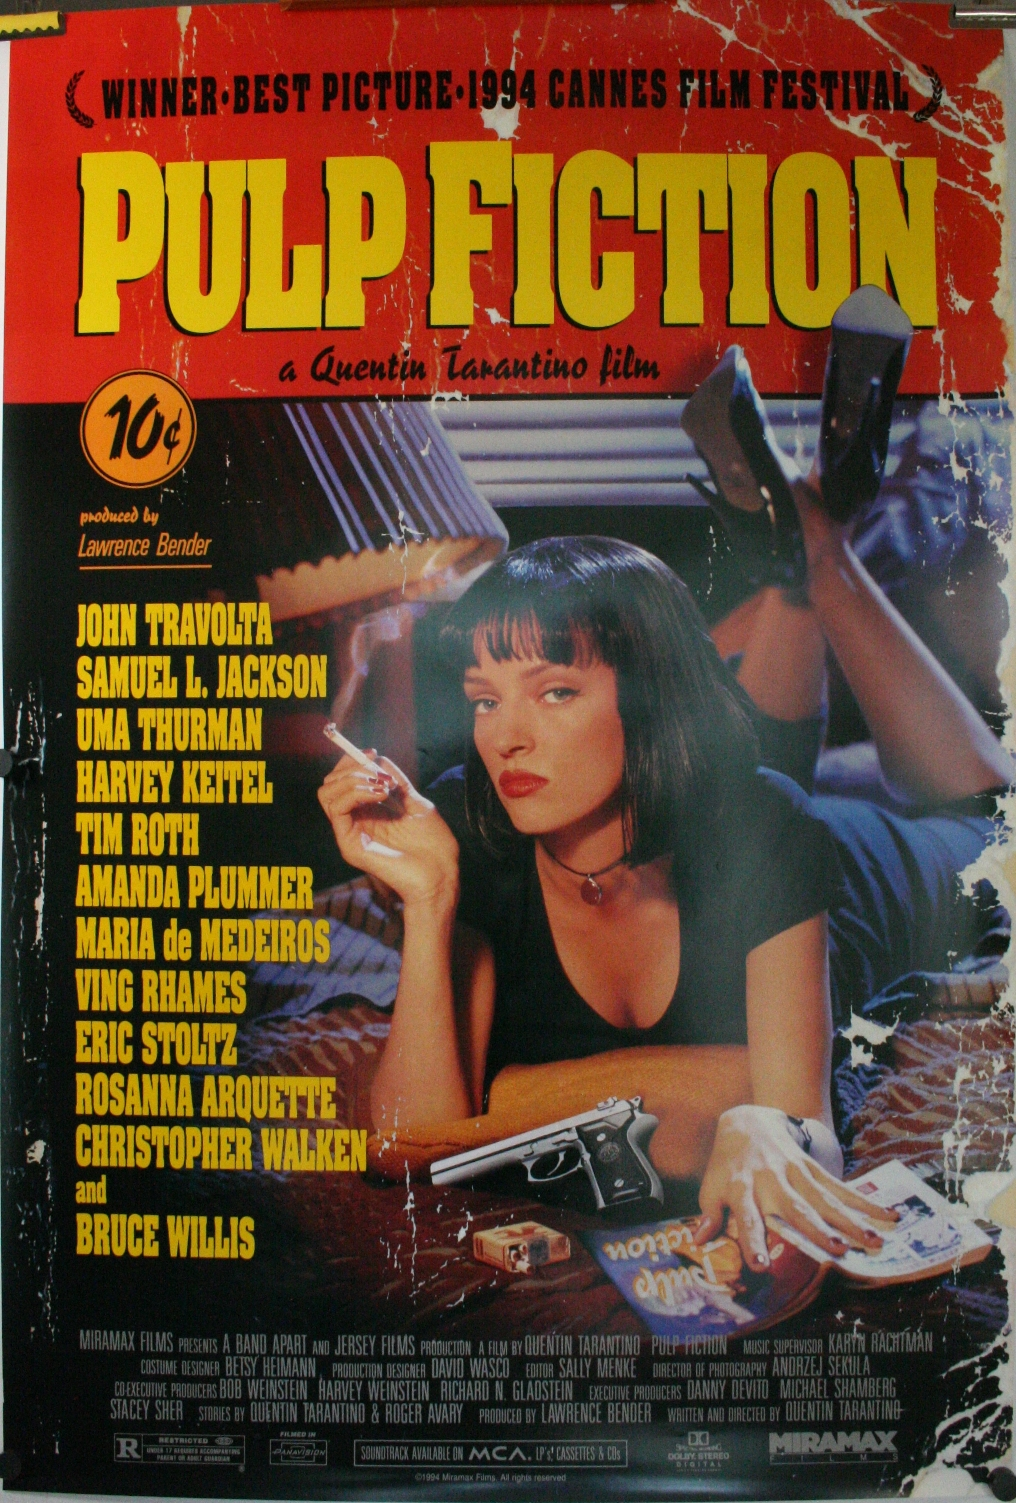 Pulp Fiction 2080-C50